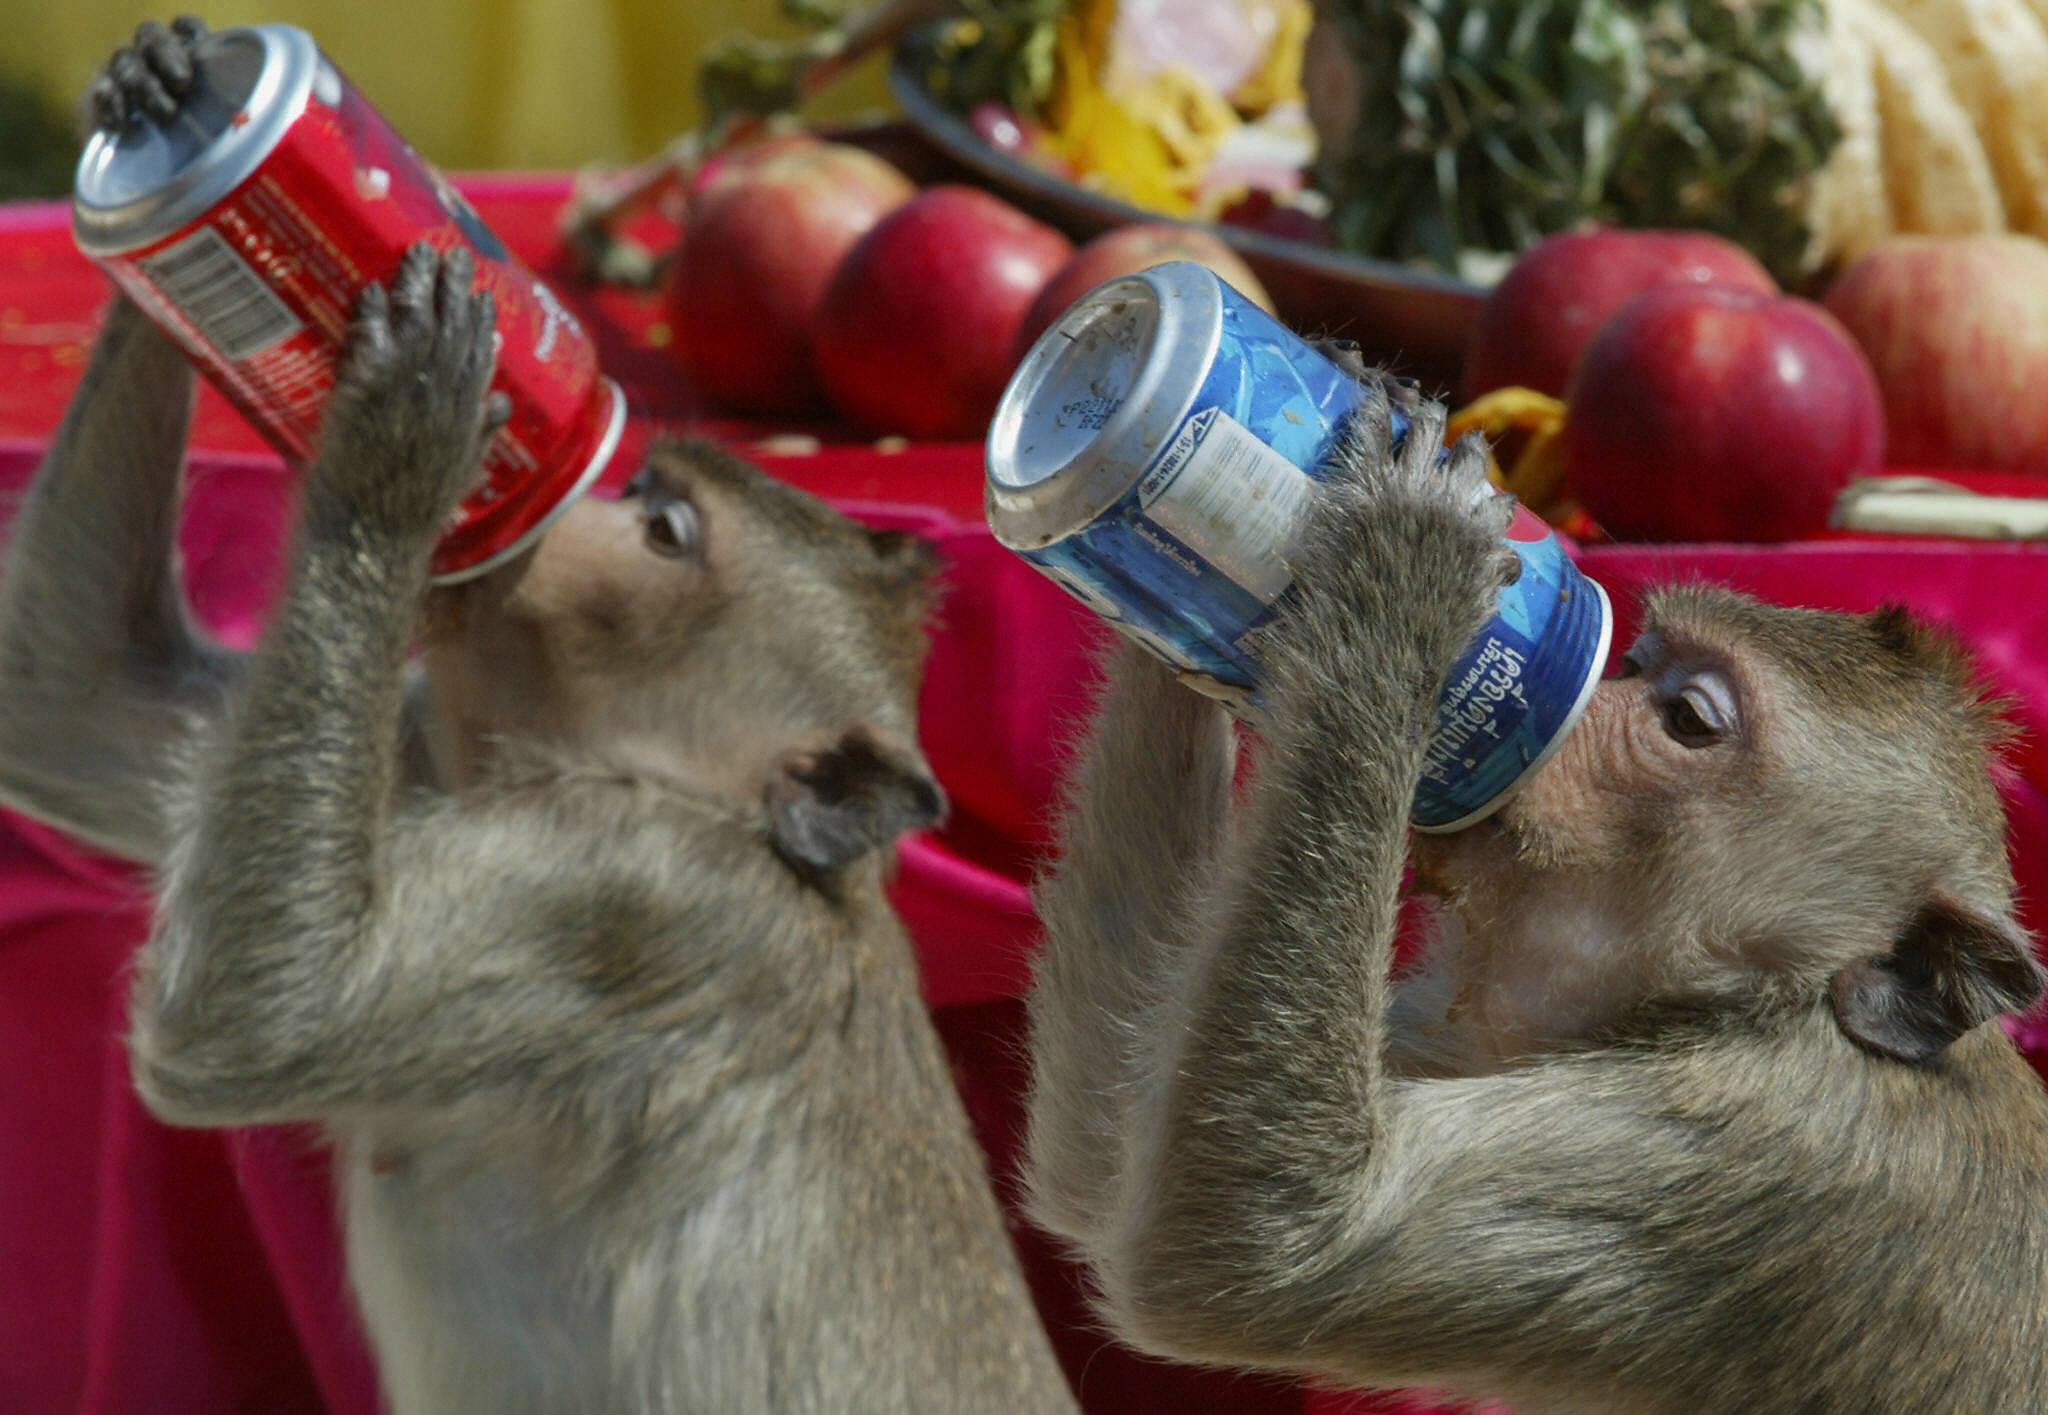 Two monkeys chug soda, showing a real lack of willpower and a poor diet